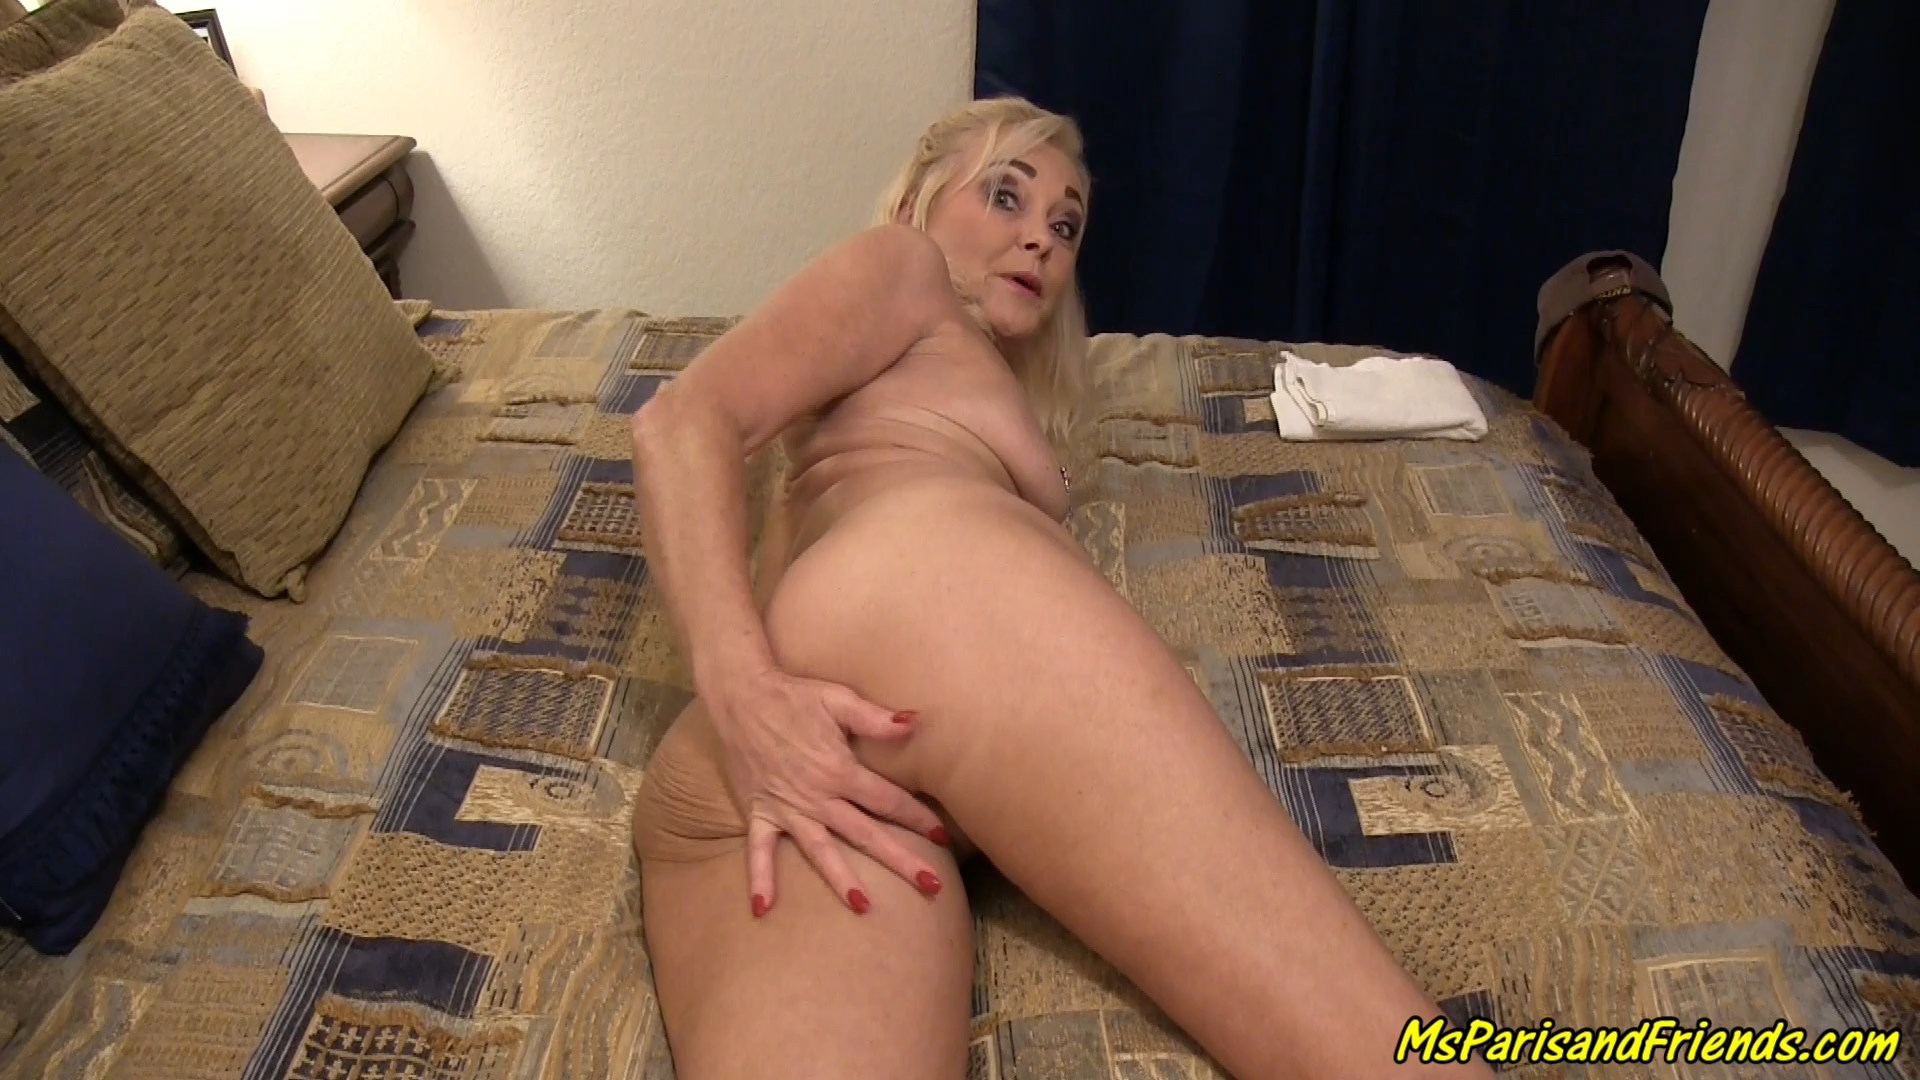 MsParisRose - Mommys Hot Ass Gets an Anal Creampie